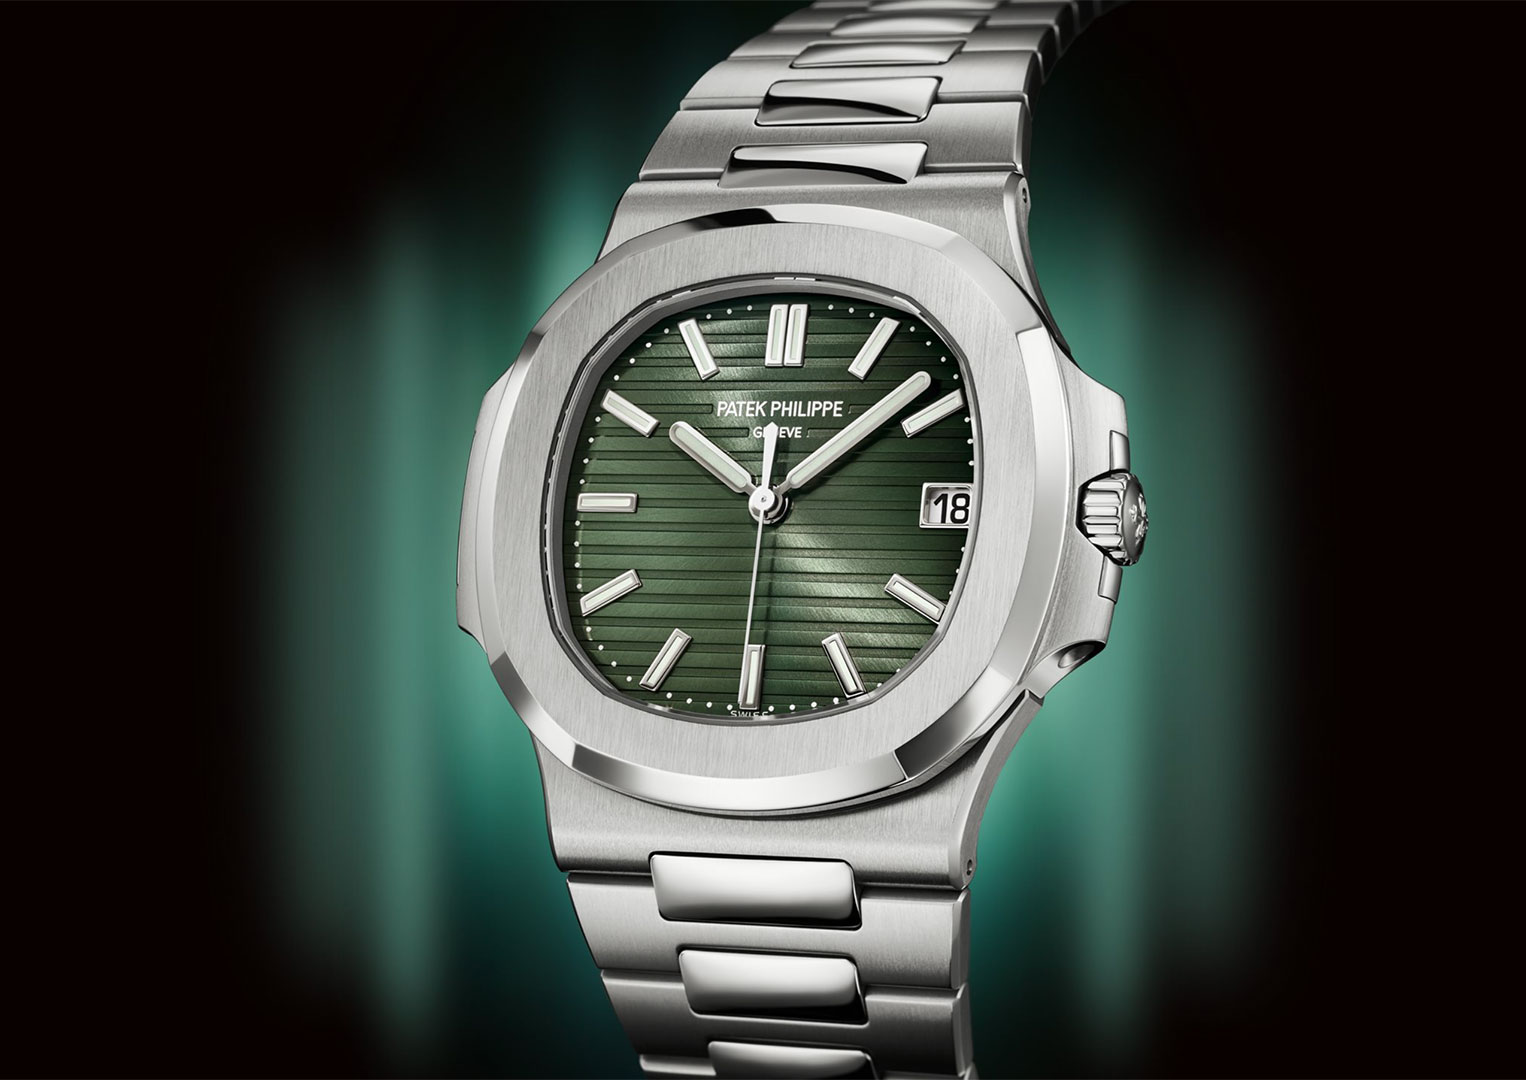 In Patek Philippe adverts, expect the watch to be set to the number 18